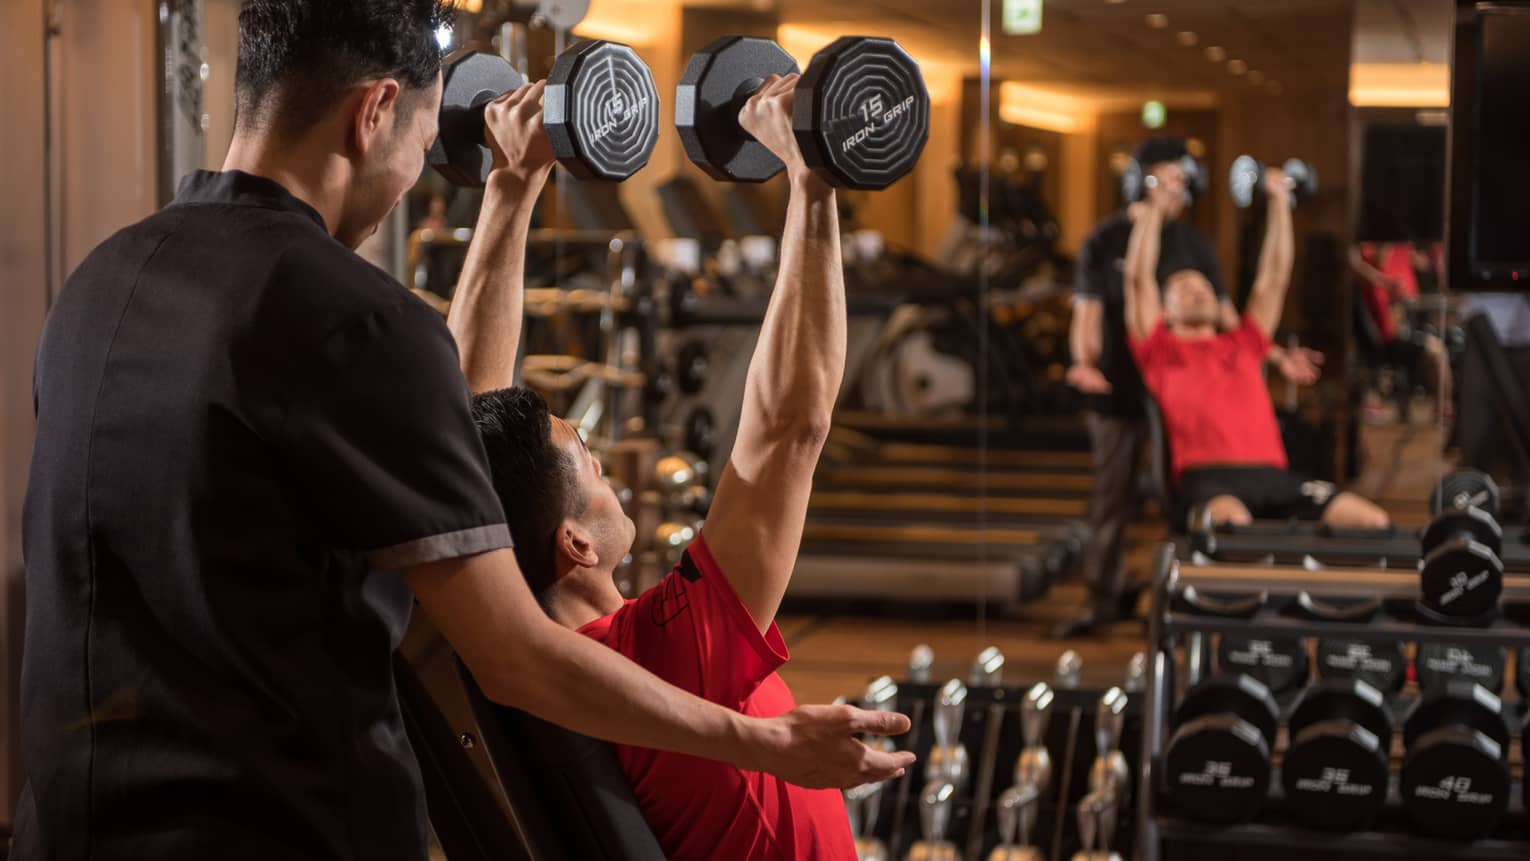 Man in chair in front of mirror lifts two 15 lb. weights above his head while personal trainer assists